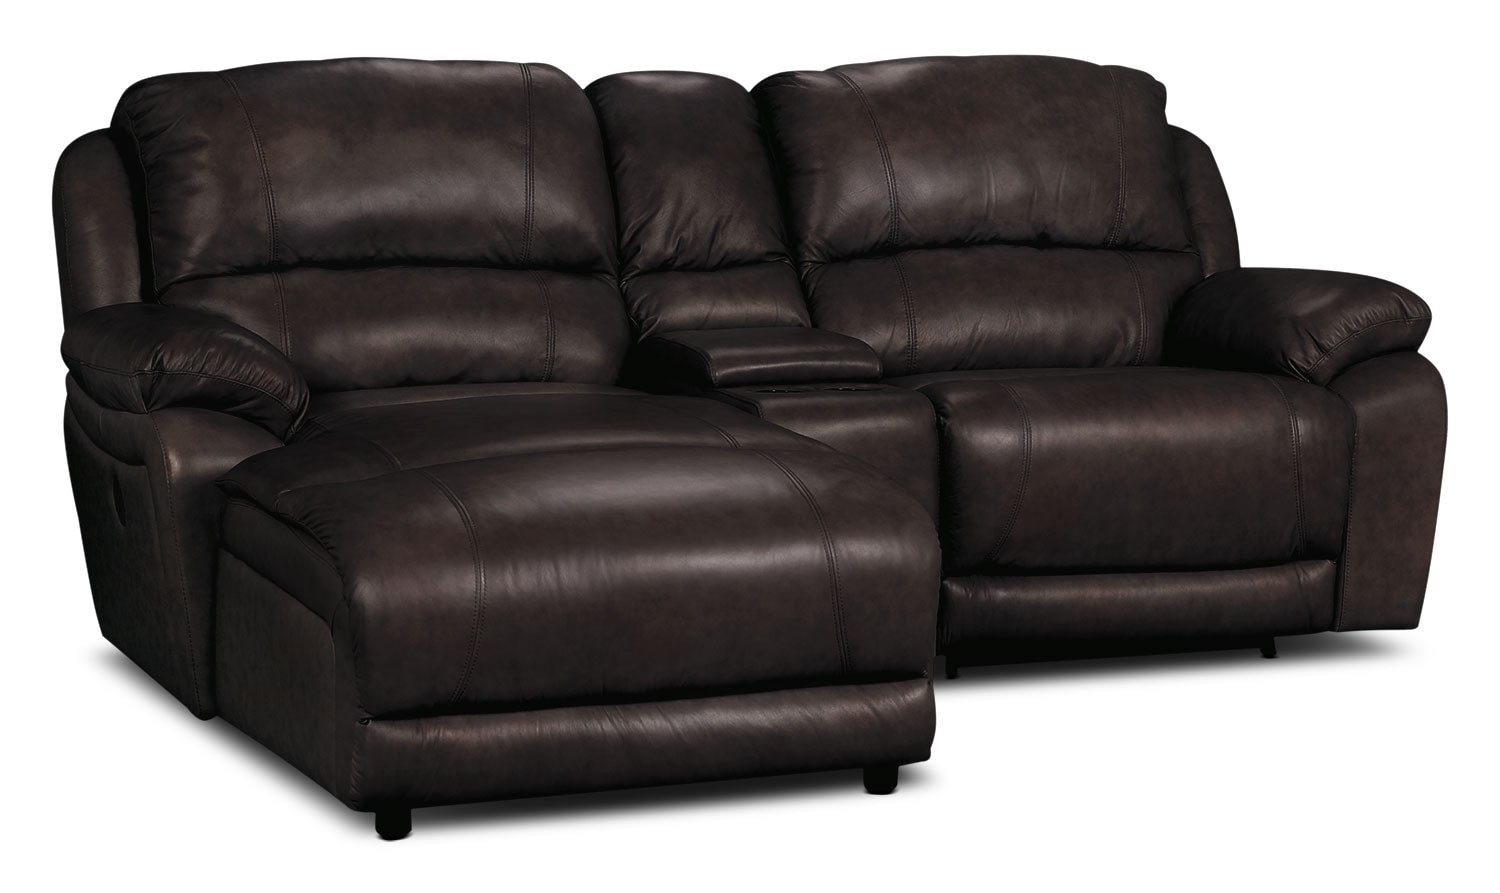 Marco genuine leather 3 piece sectional with chaise power for 3 piece sectional sofa with chaise